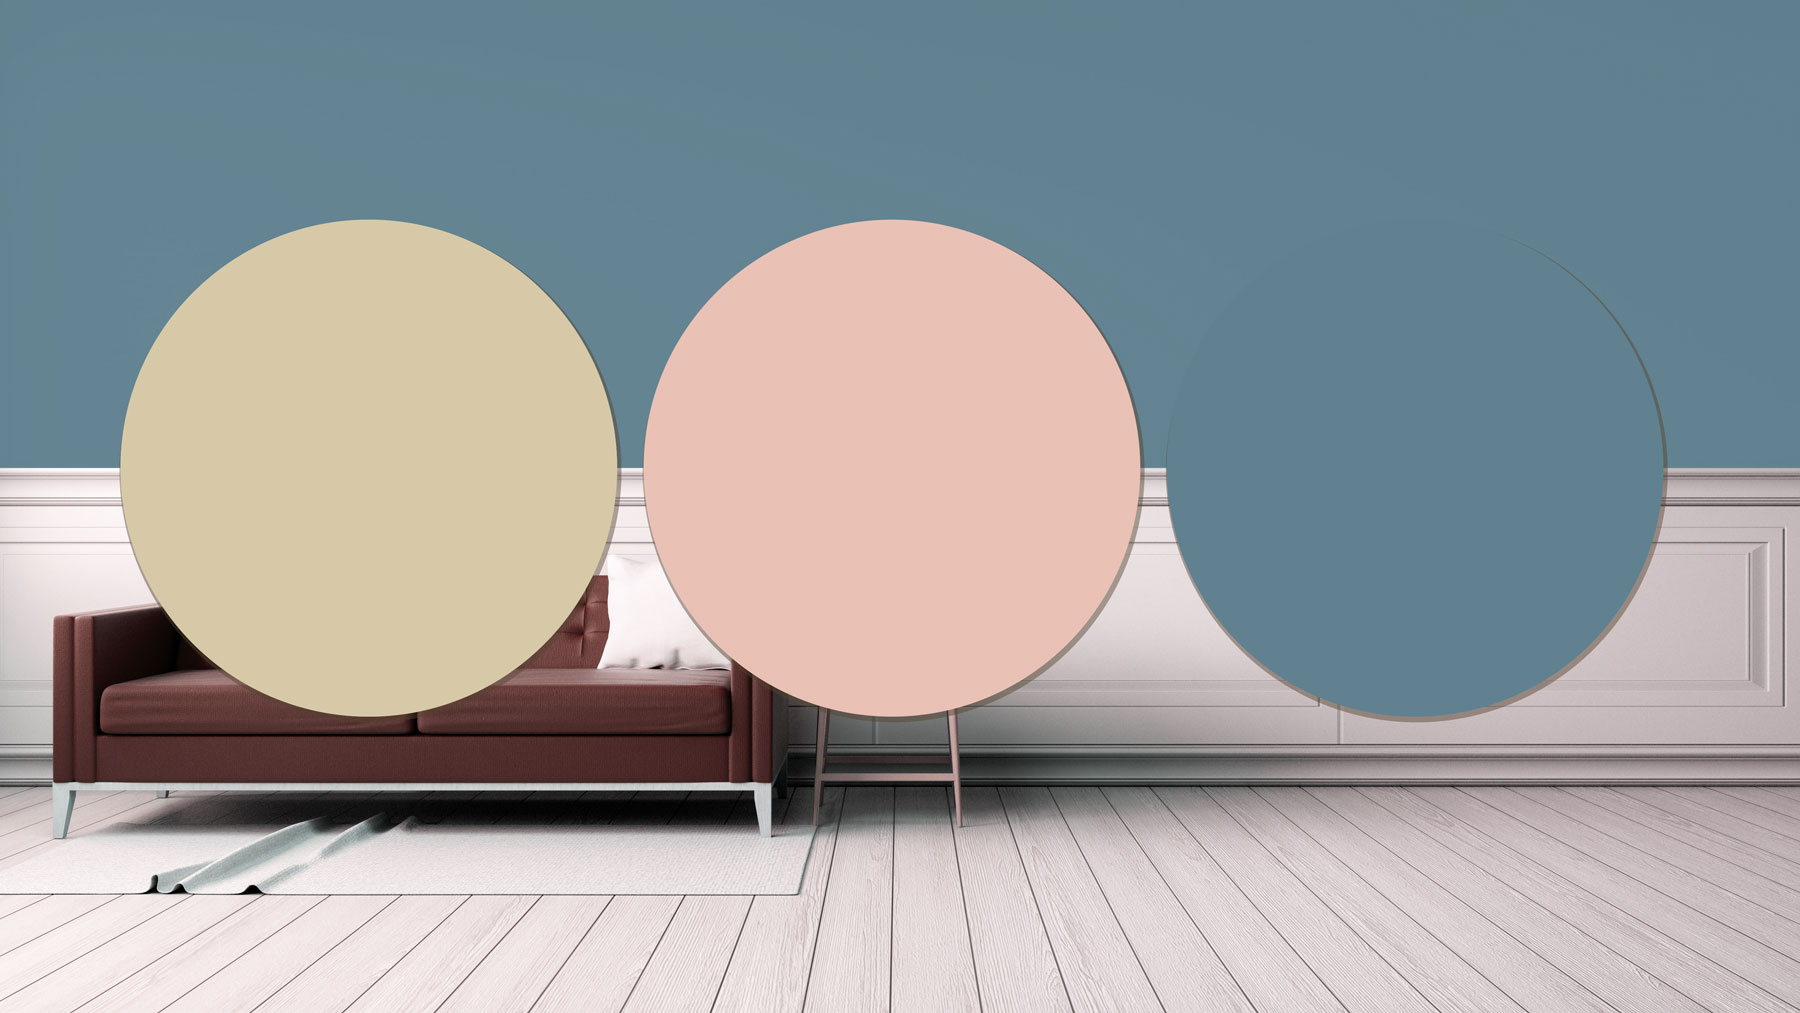 The Best Paint Colors for Summer, According to Google